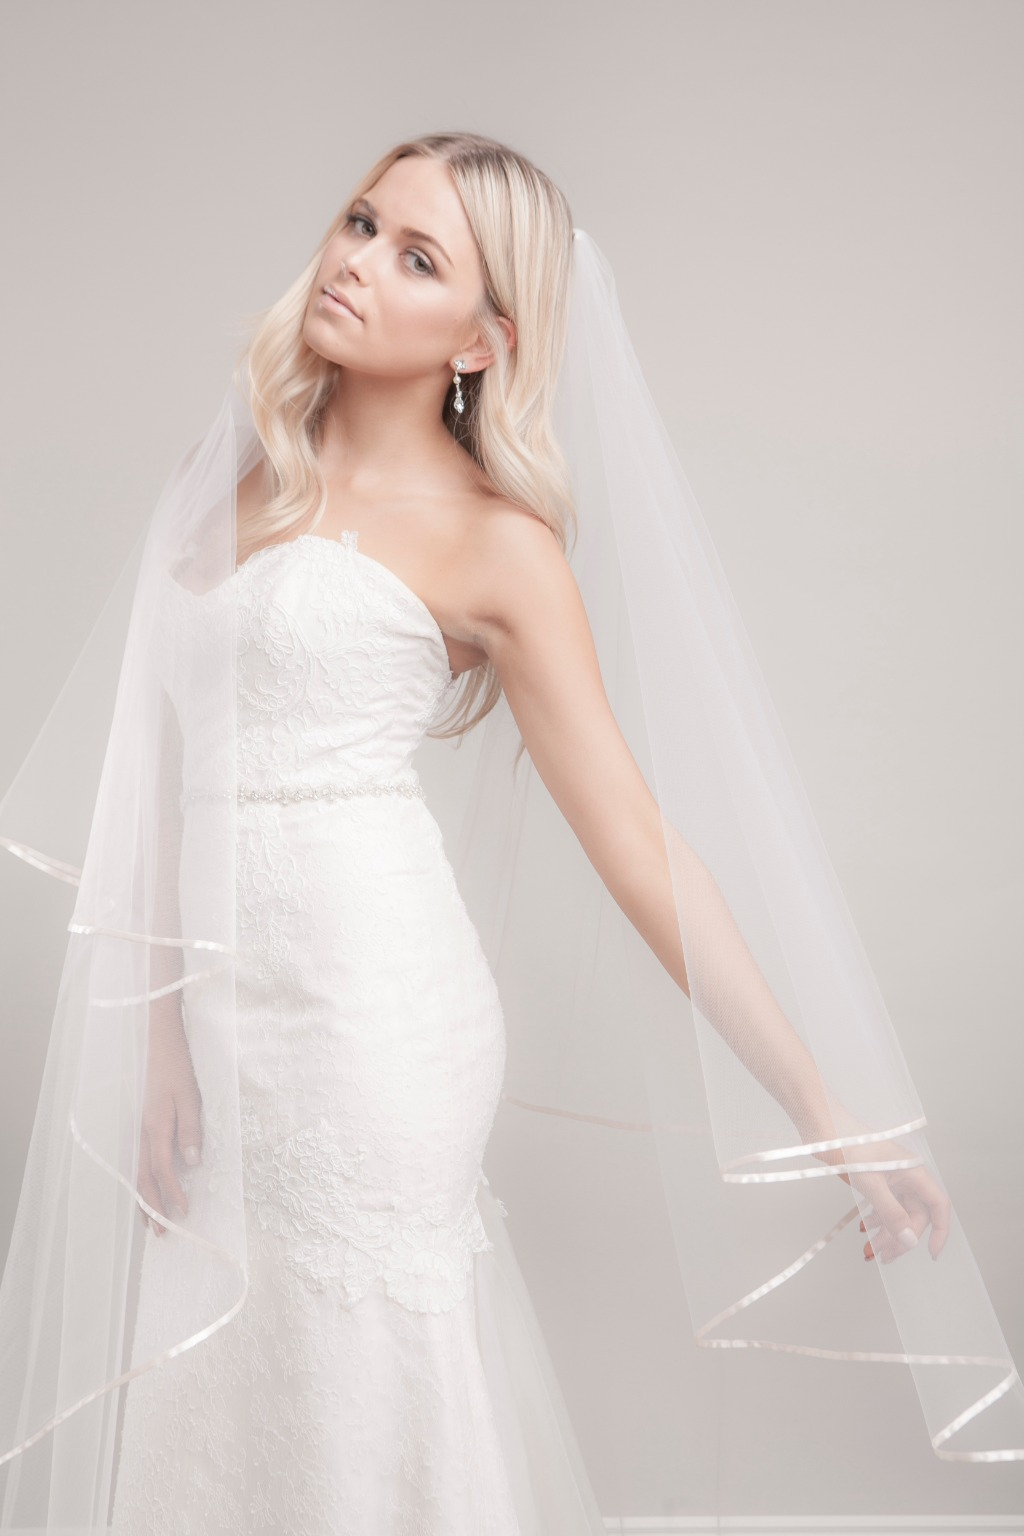 Looking for traditional oval cut wedding veil? Miranda cathedral veil is an elegant two-tier style that beautifully finished with Japanese